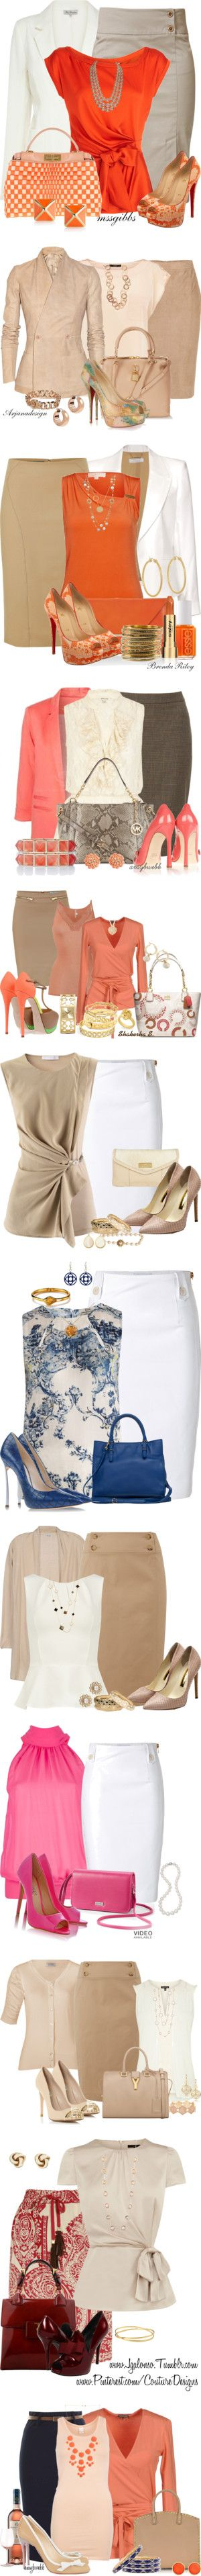 "Outfit ideas for a spring, work appropriate look #spring #fashion #work ""Office In The Spring"" by esha2001 ❤ liked on Polyvore"